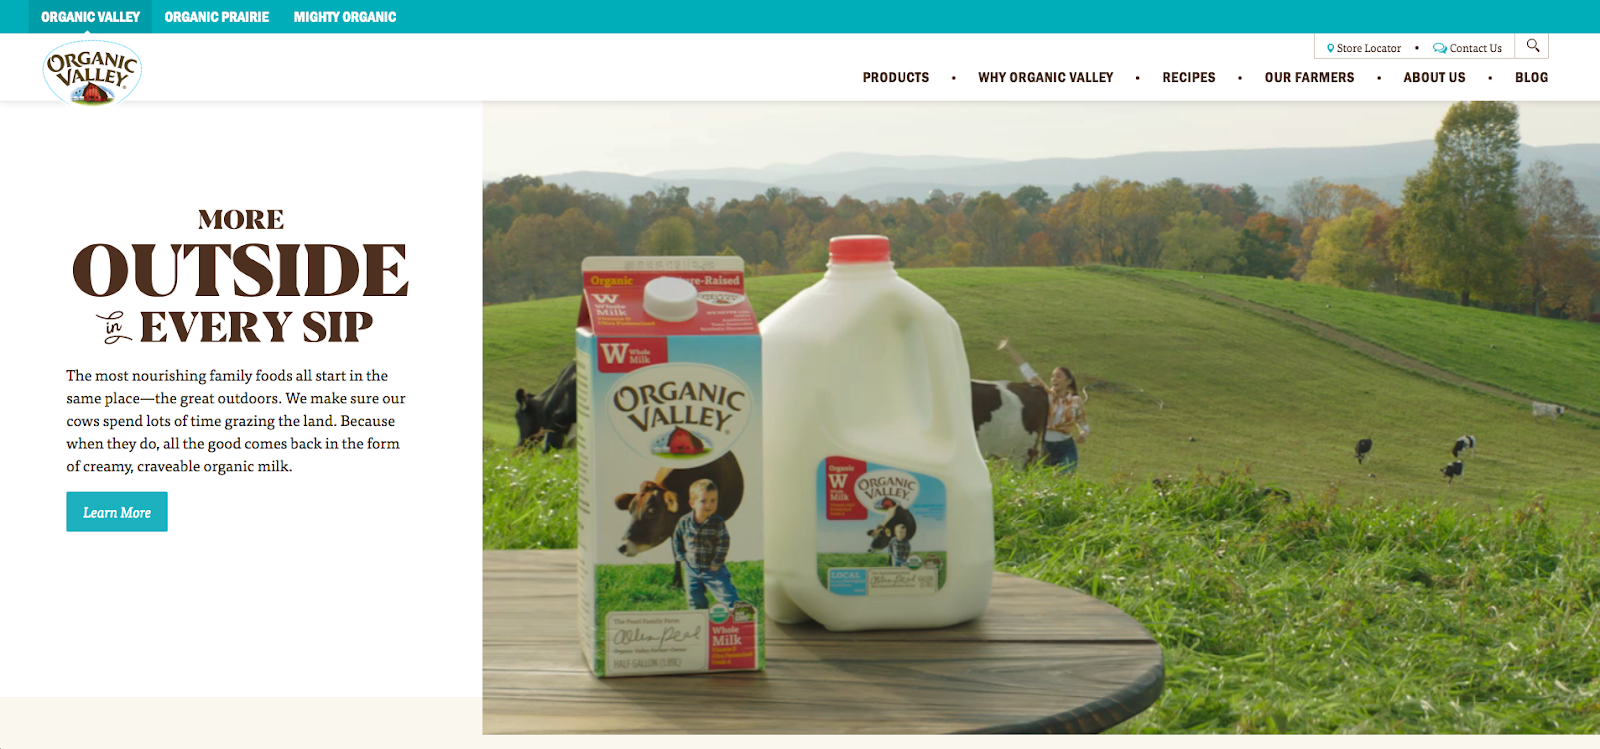 Organic Valley homepage screenshot